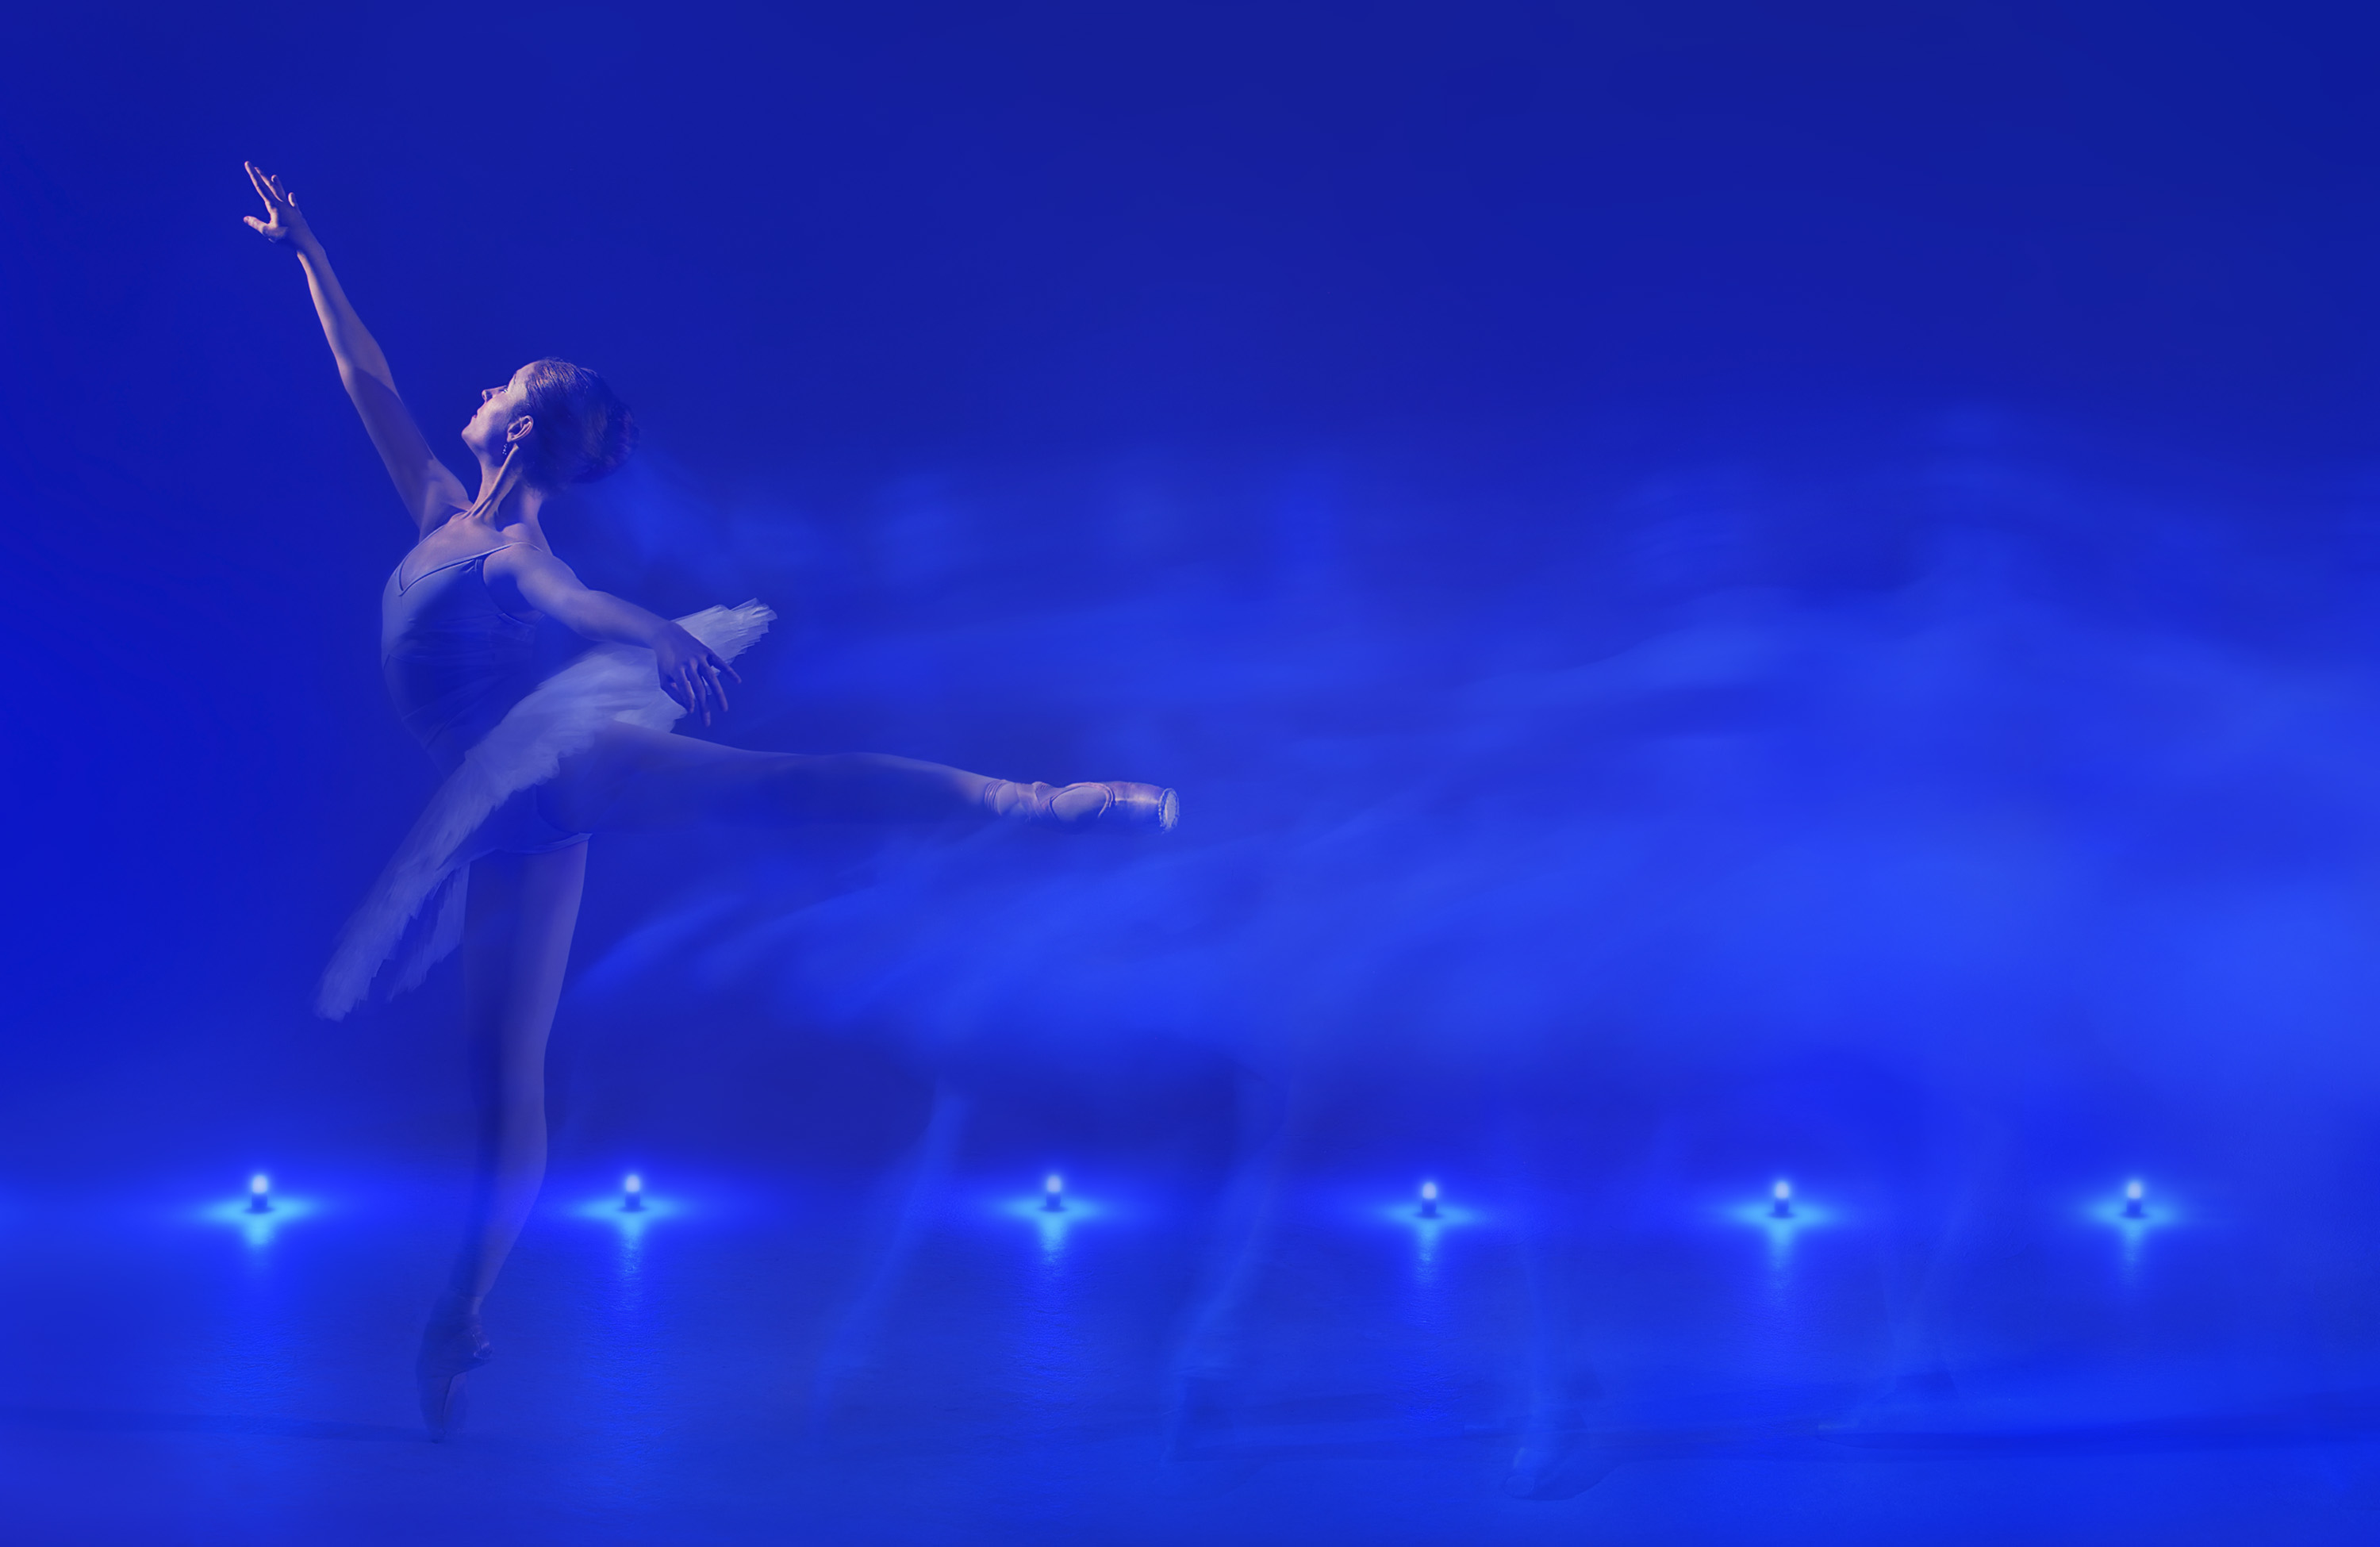 6-Arabesque-Blue-Motion